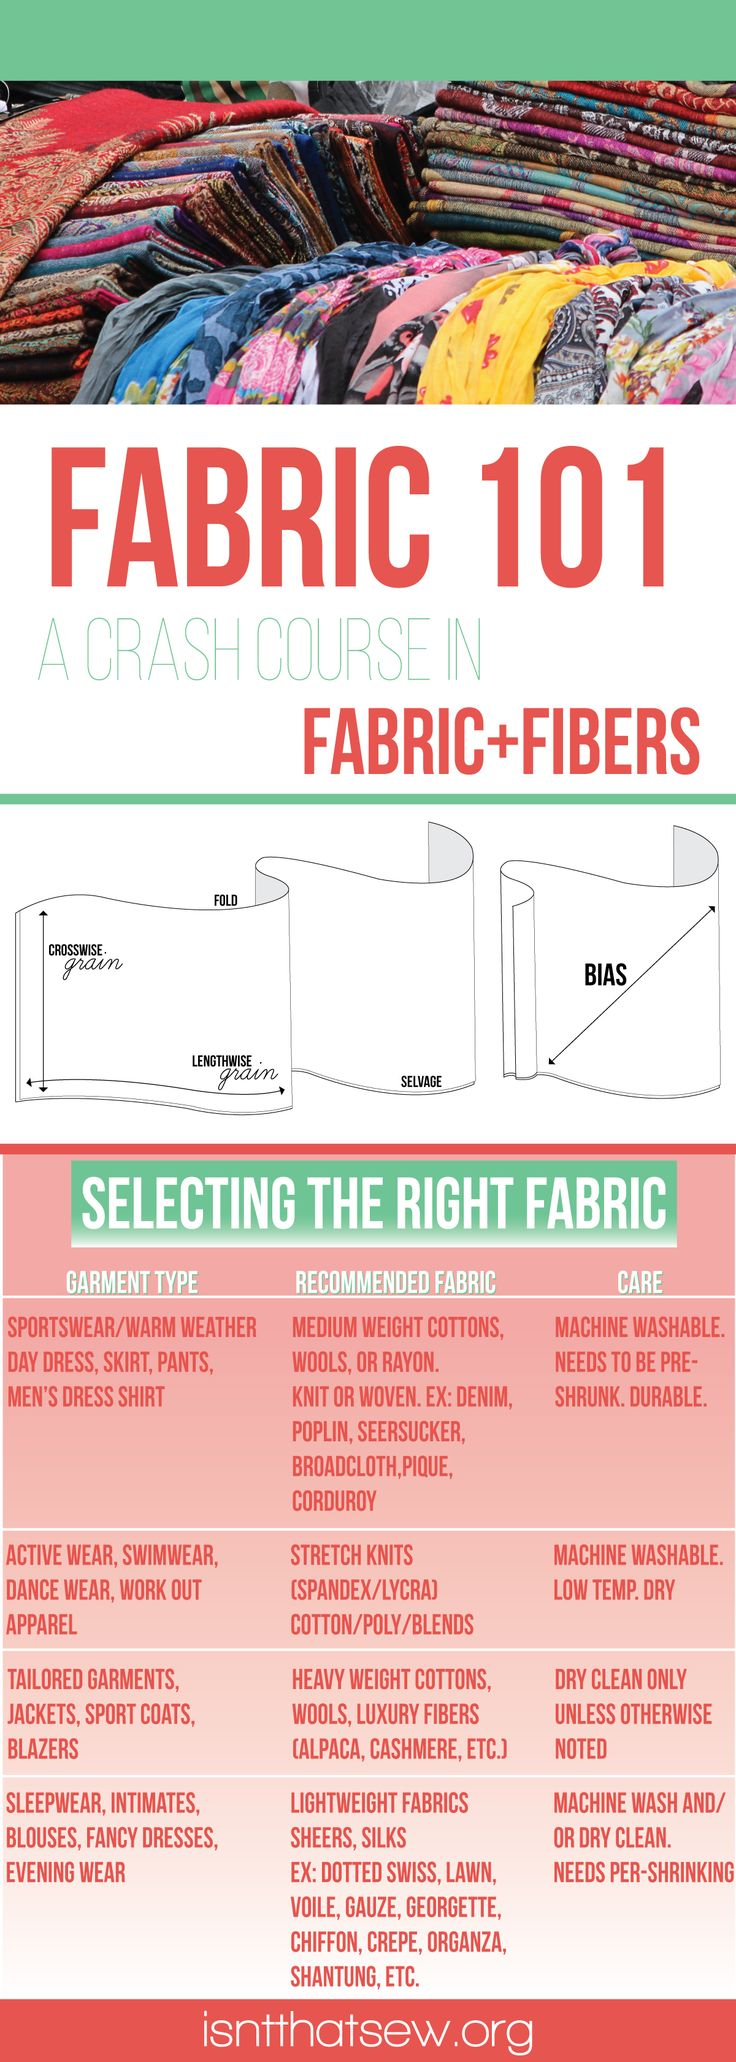 Fabric 101 | A crash course in fabric, fibers, and their use and care. | Fabric 101 | A crash course in Fabric, Fiber, and their use and care | isntthatsew.org